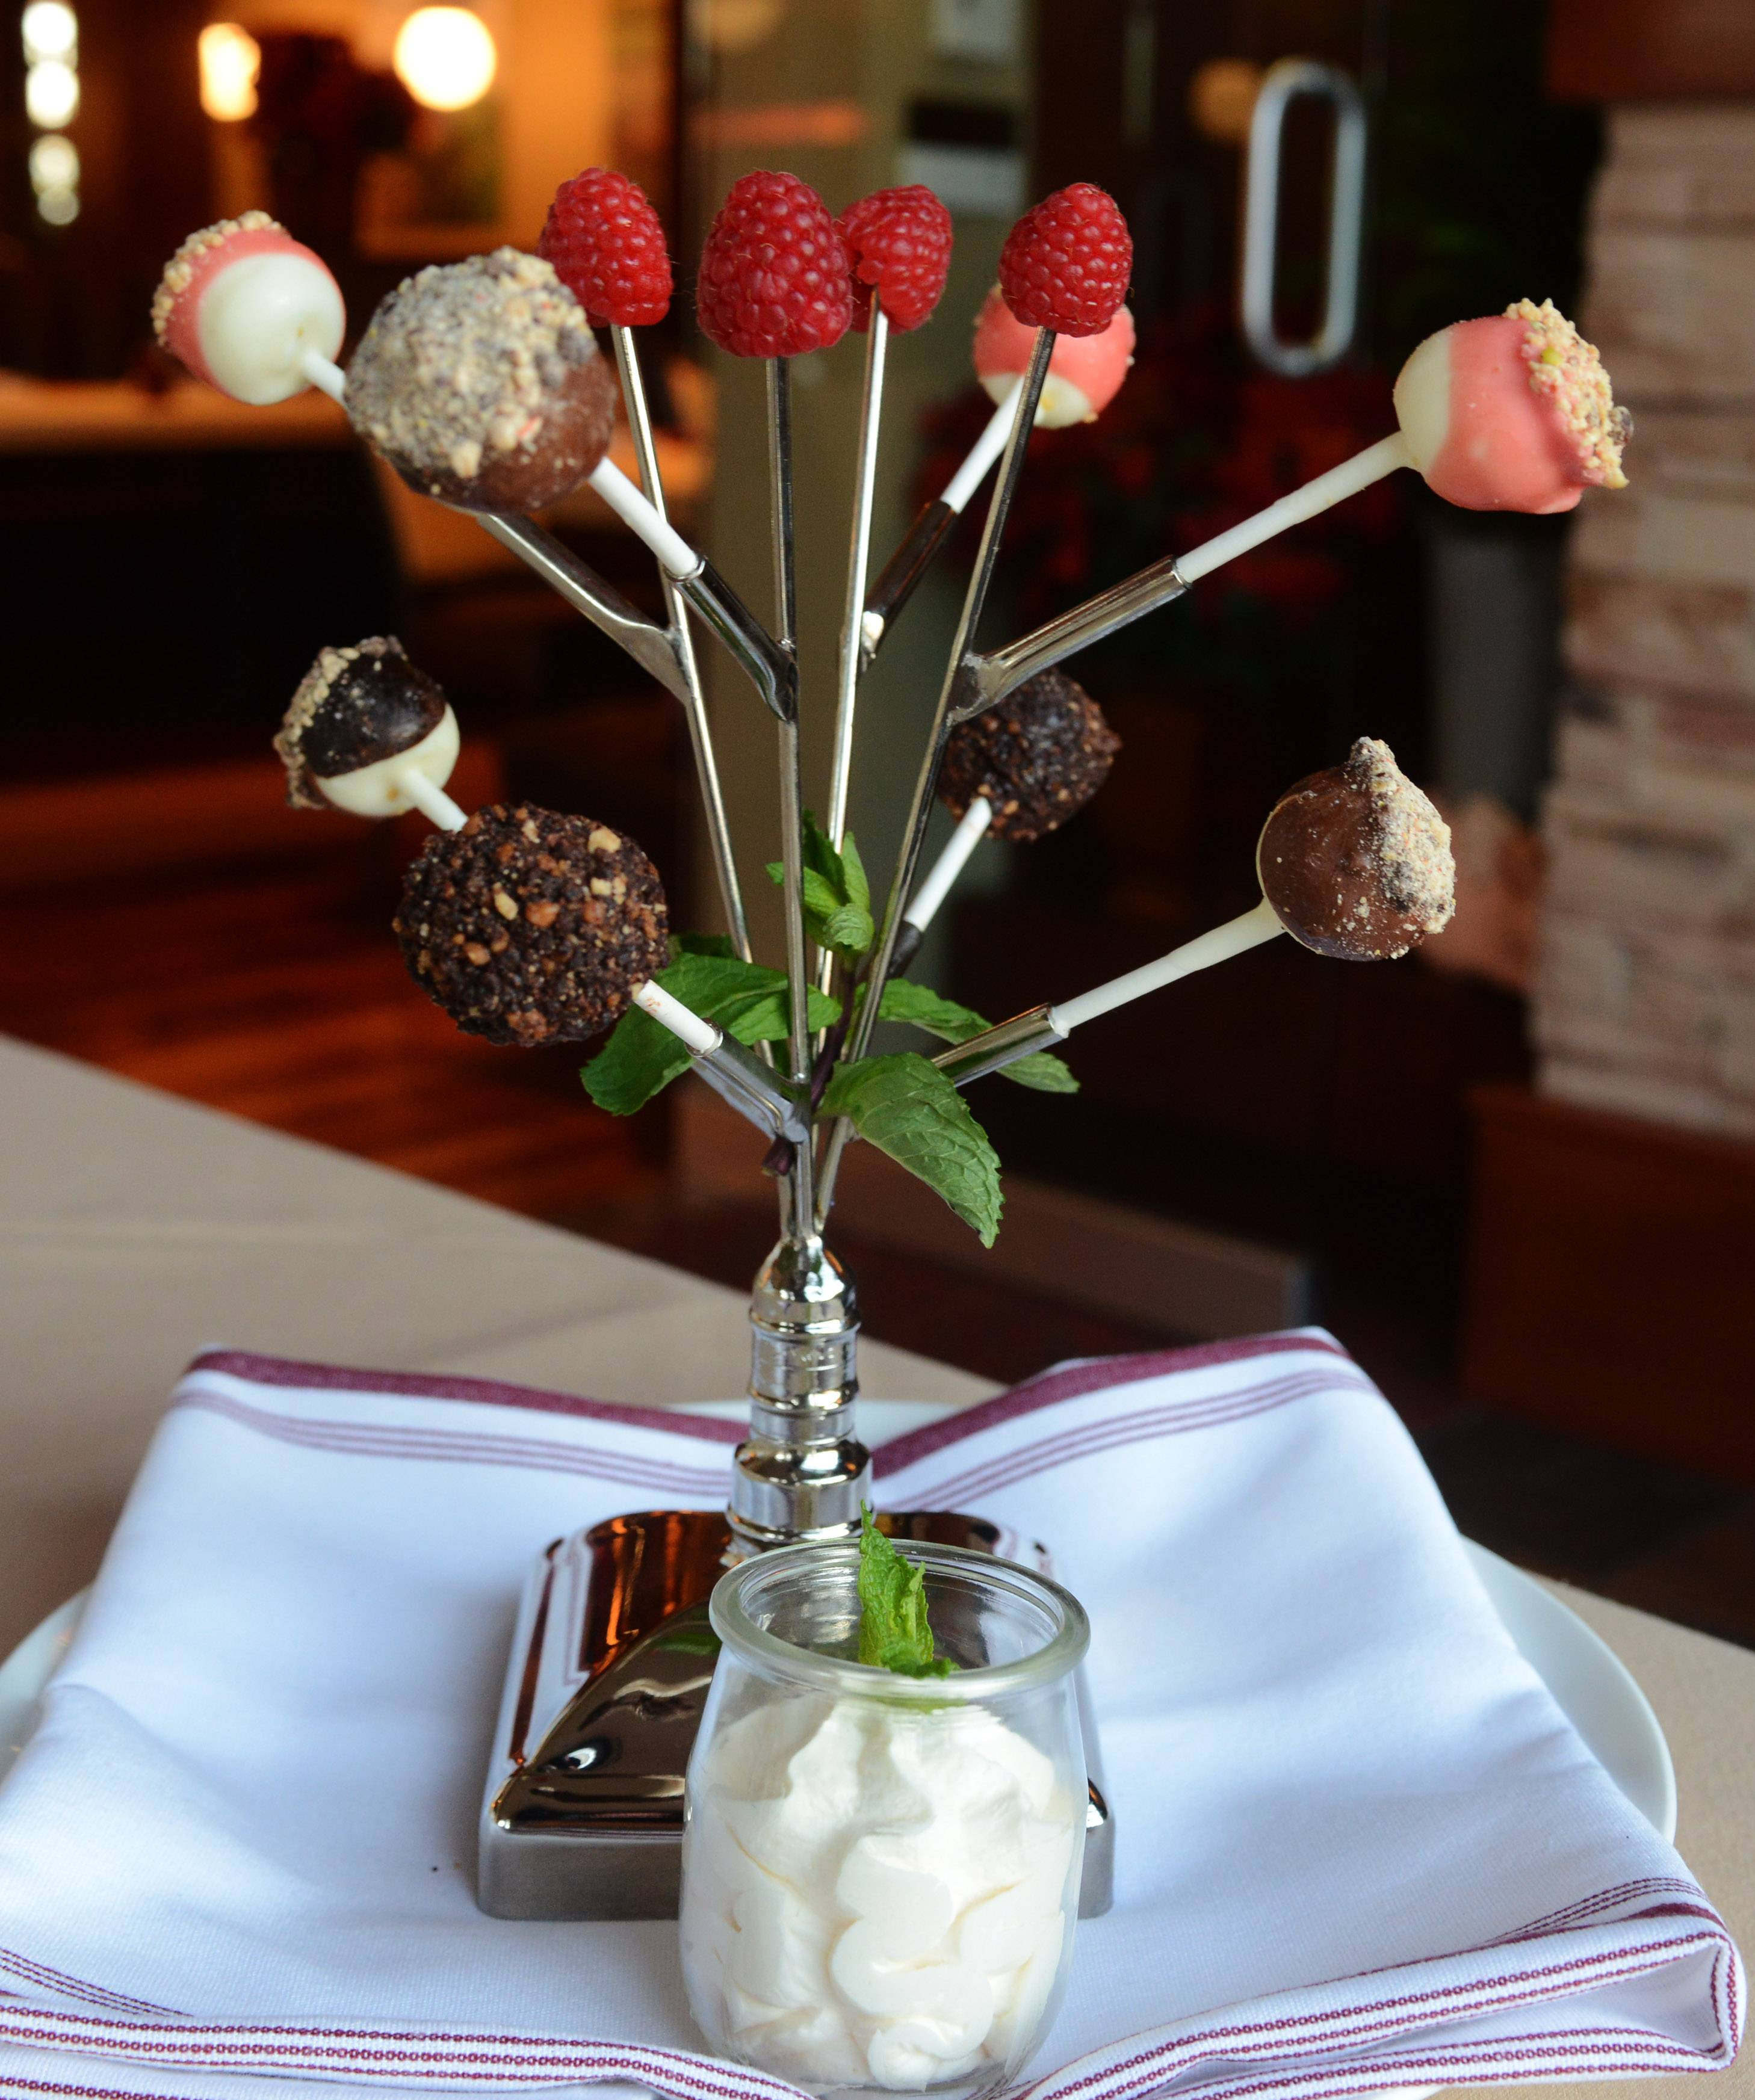 David Burke's Cheesecake Lollipops come served with bubble gum whipped cream at the new Schaumburg restaurant.